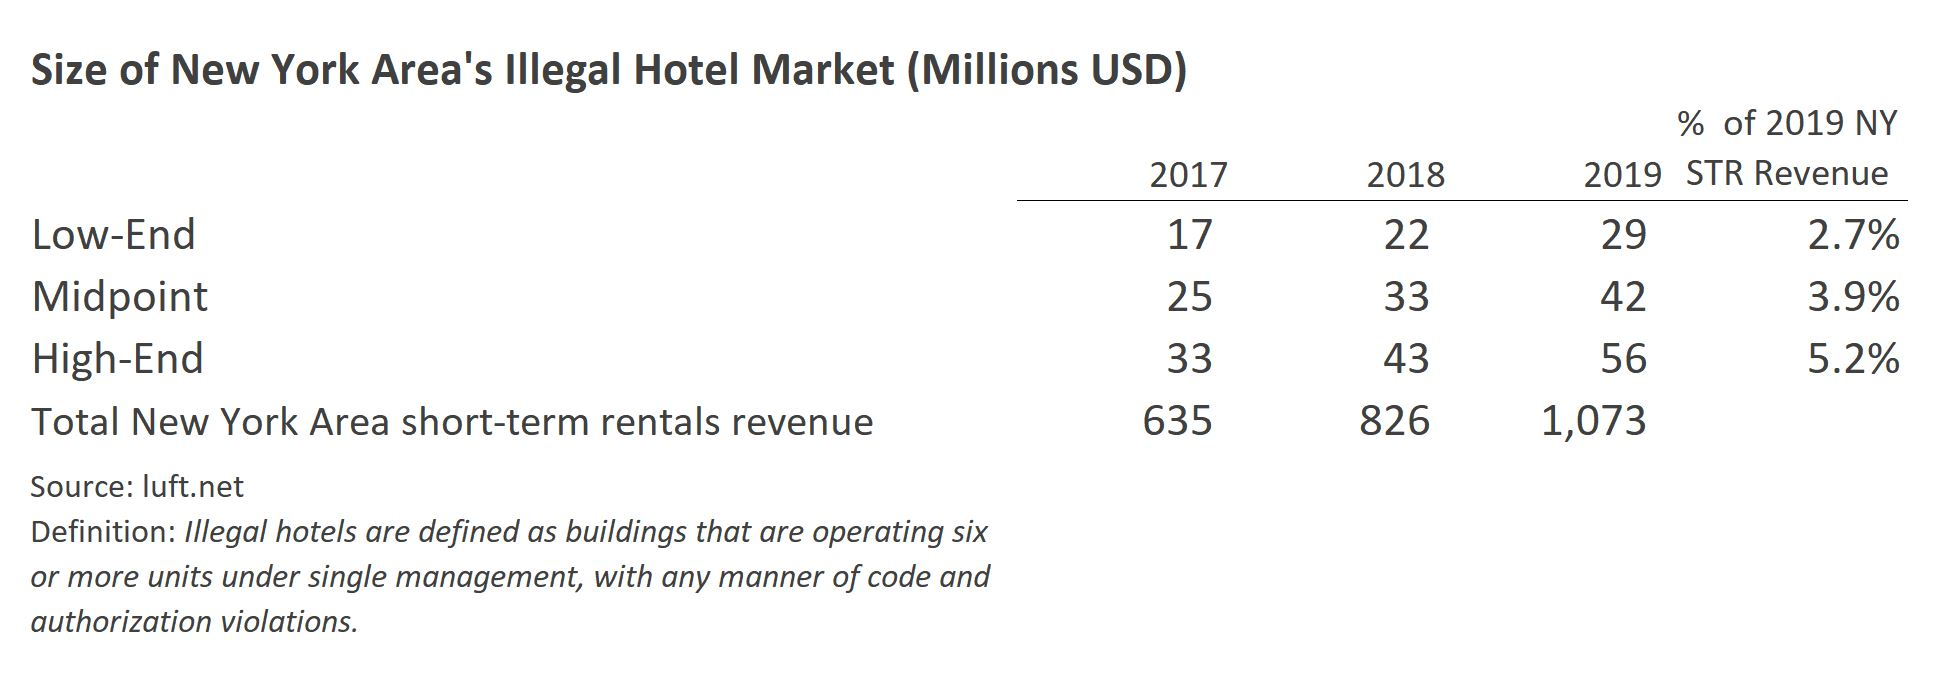 Source: luft.net Definition: Illegal hotels are defined as buildings that are operating six or more short-term rental units under single management, with any manner of code and authorization violations.